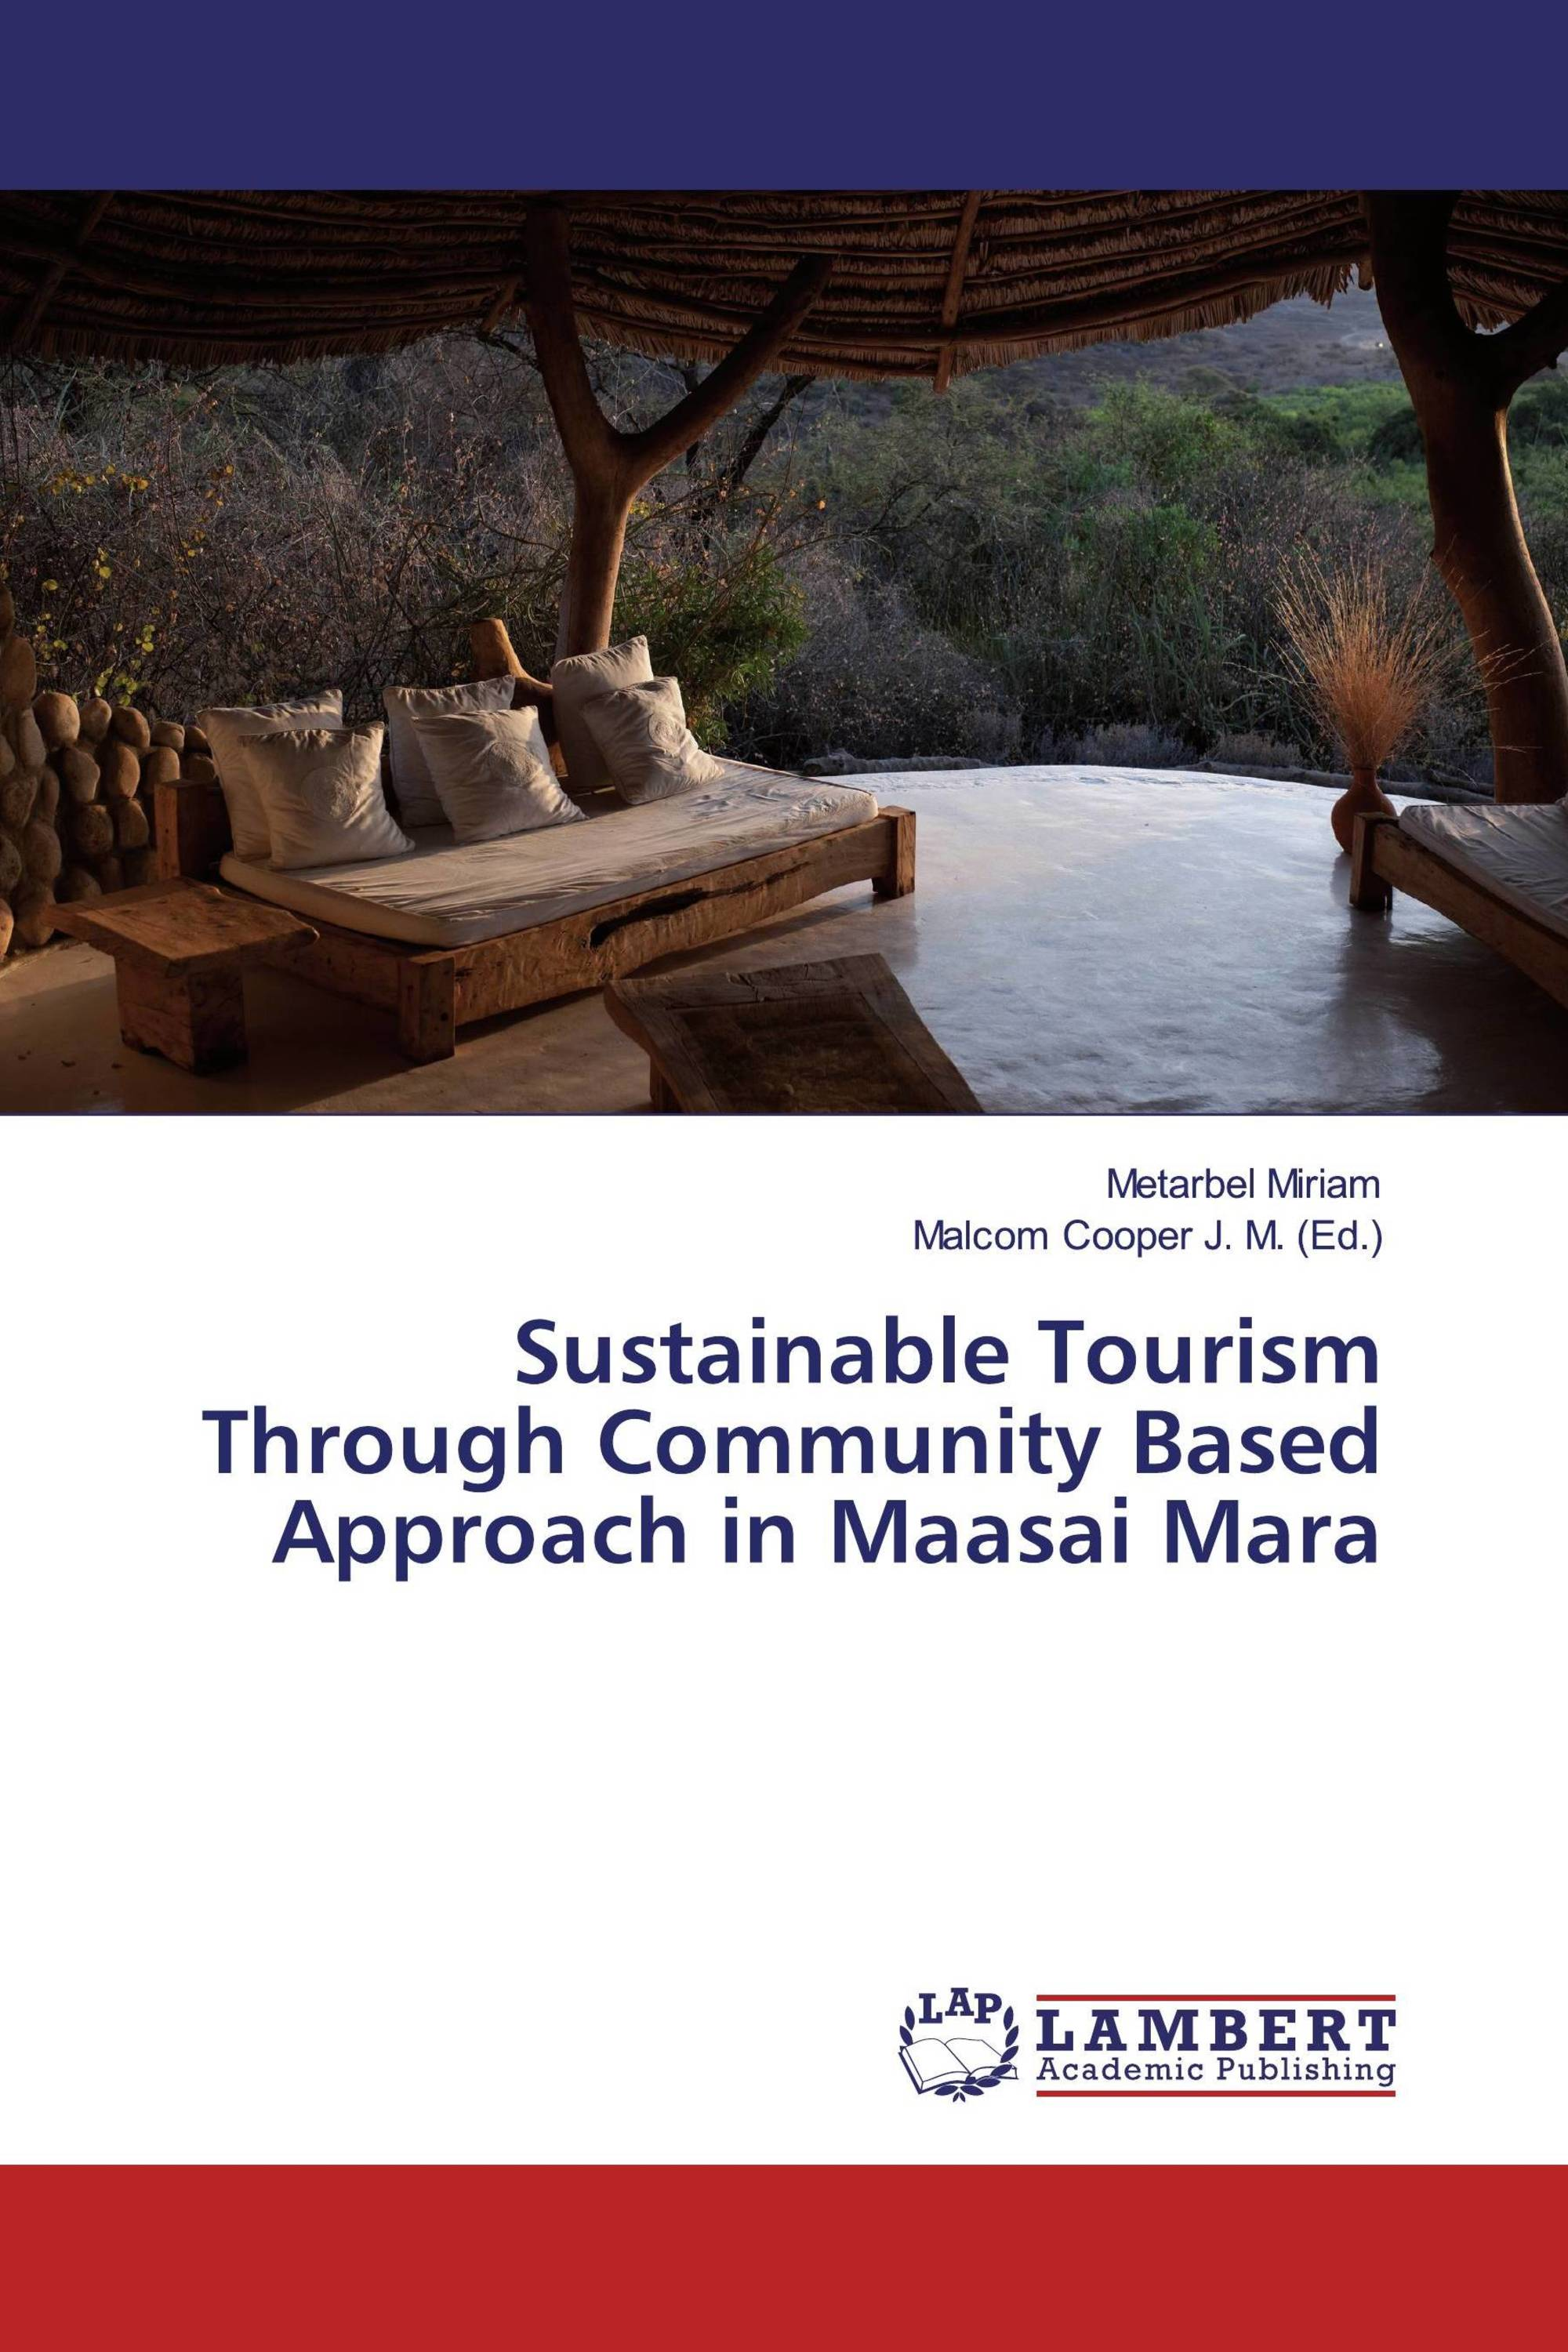 Sustainable Tourism Through Community Based Approach in Maasai Mara